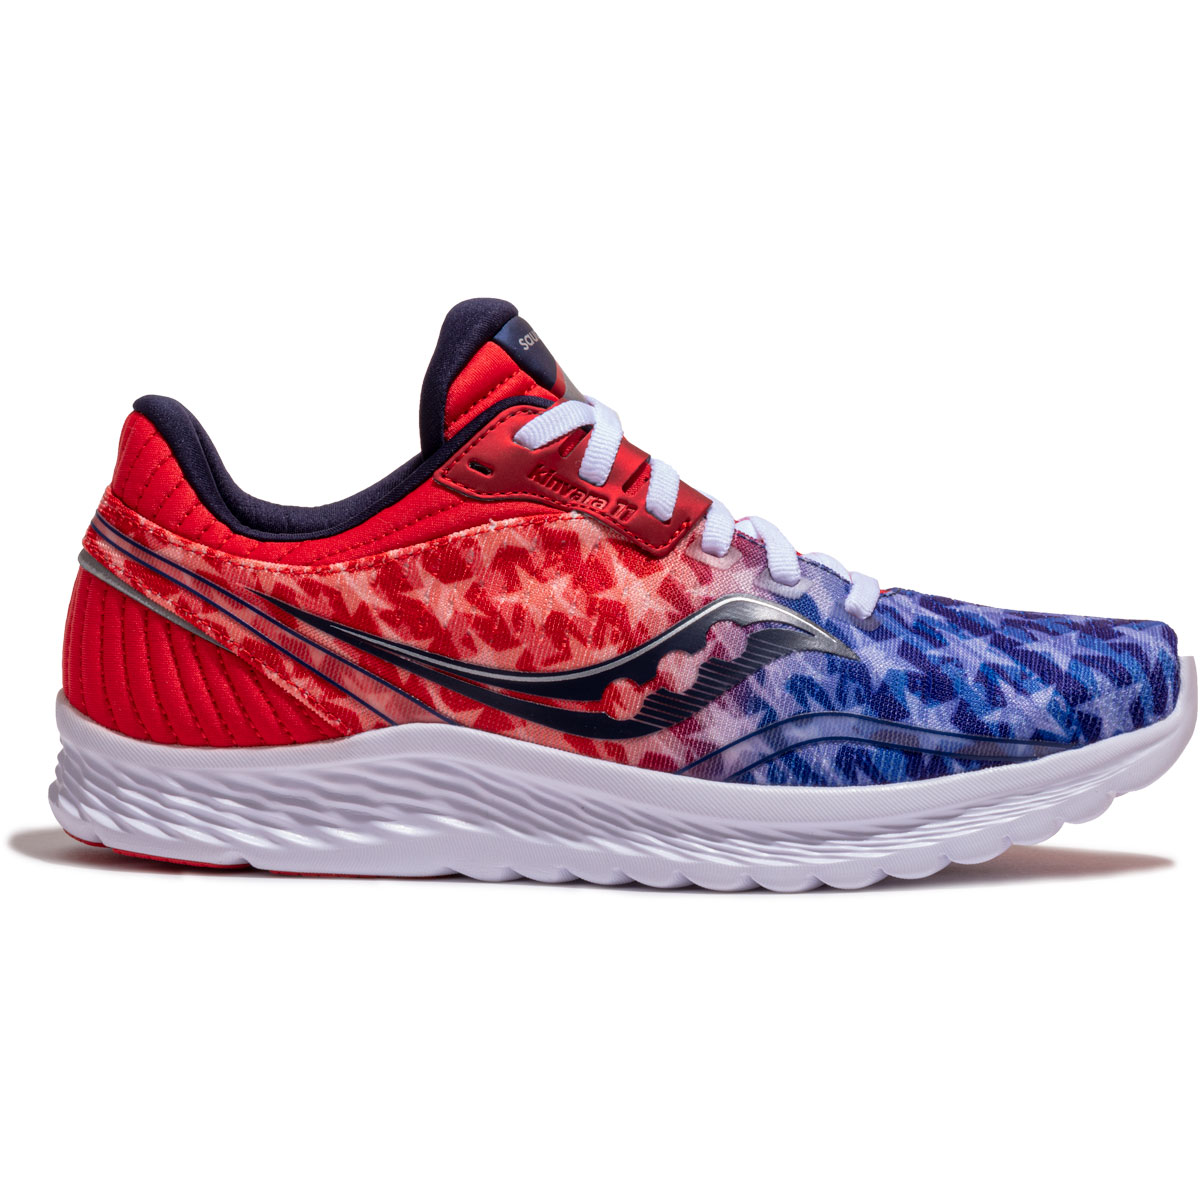 Women's Saucony Kinvara 11 Running Shoe - Color: Red/White/Blue - Size: 5 - Width: Regular, Red/White/Blue, large, image 1